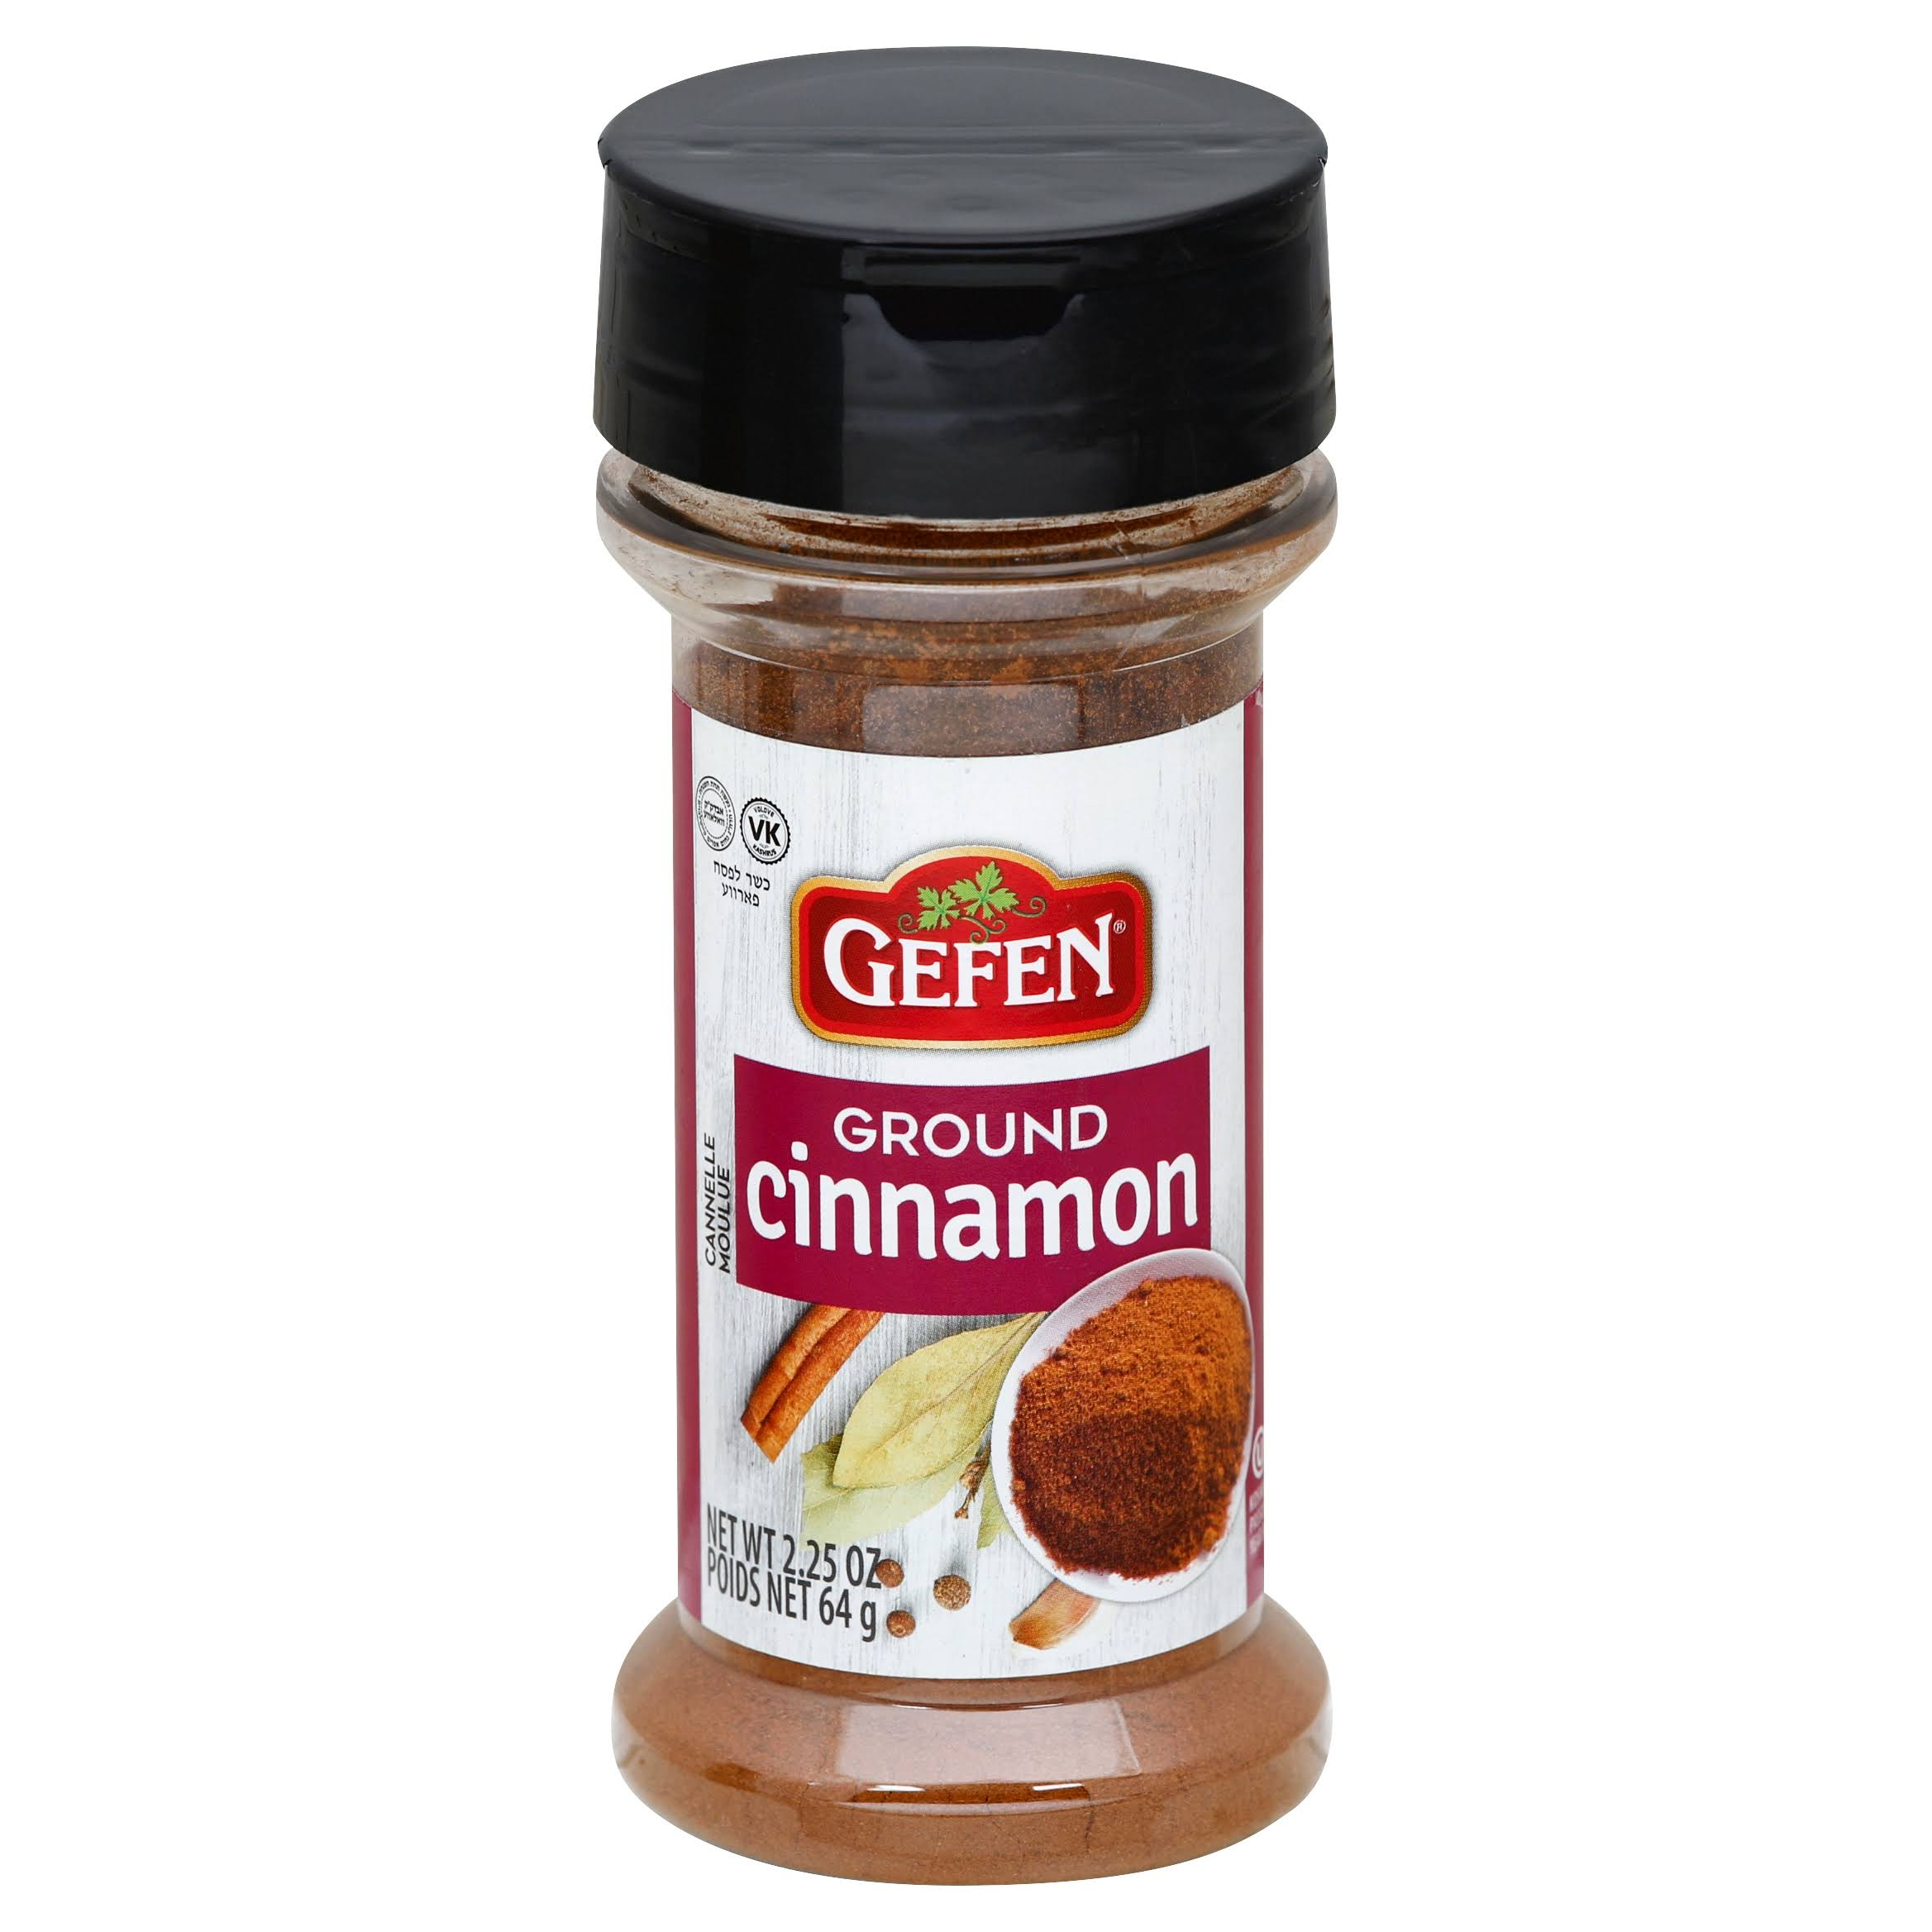 Gefen Ground Cinnamon - 2.25 Oz